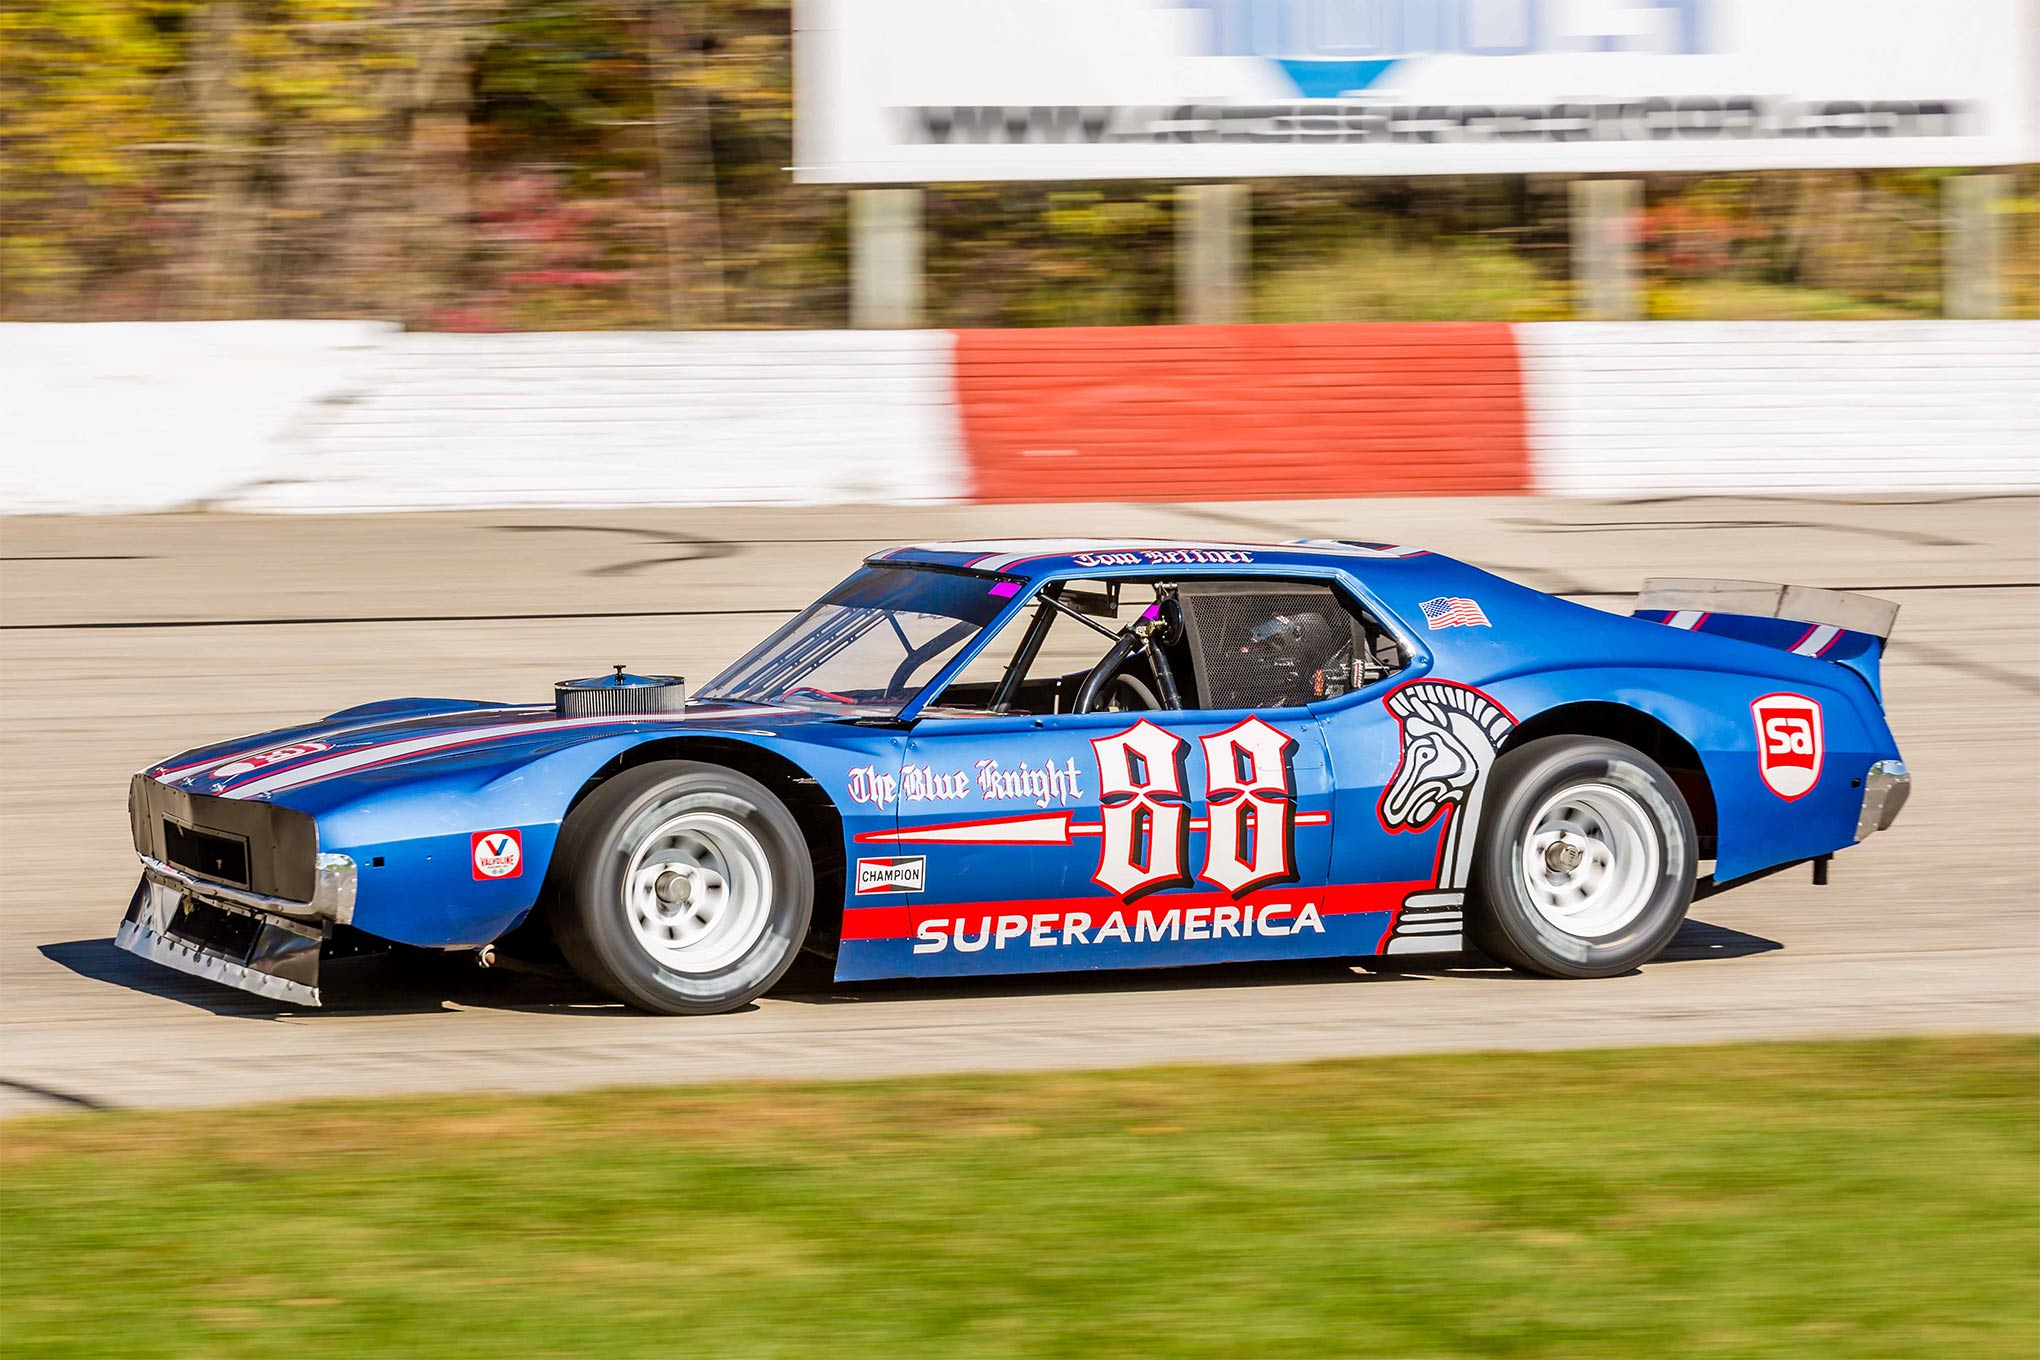 Johnny Gilbertson's Blue Knight tribute. The '74 Javelin was one of the faster cars at Oktoberfest.